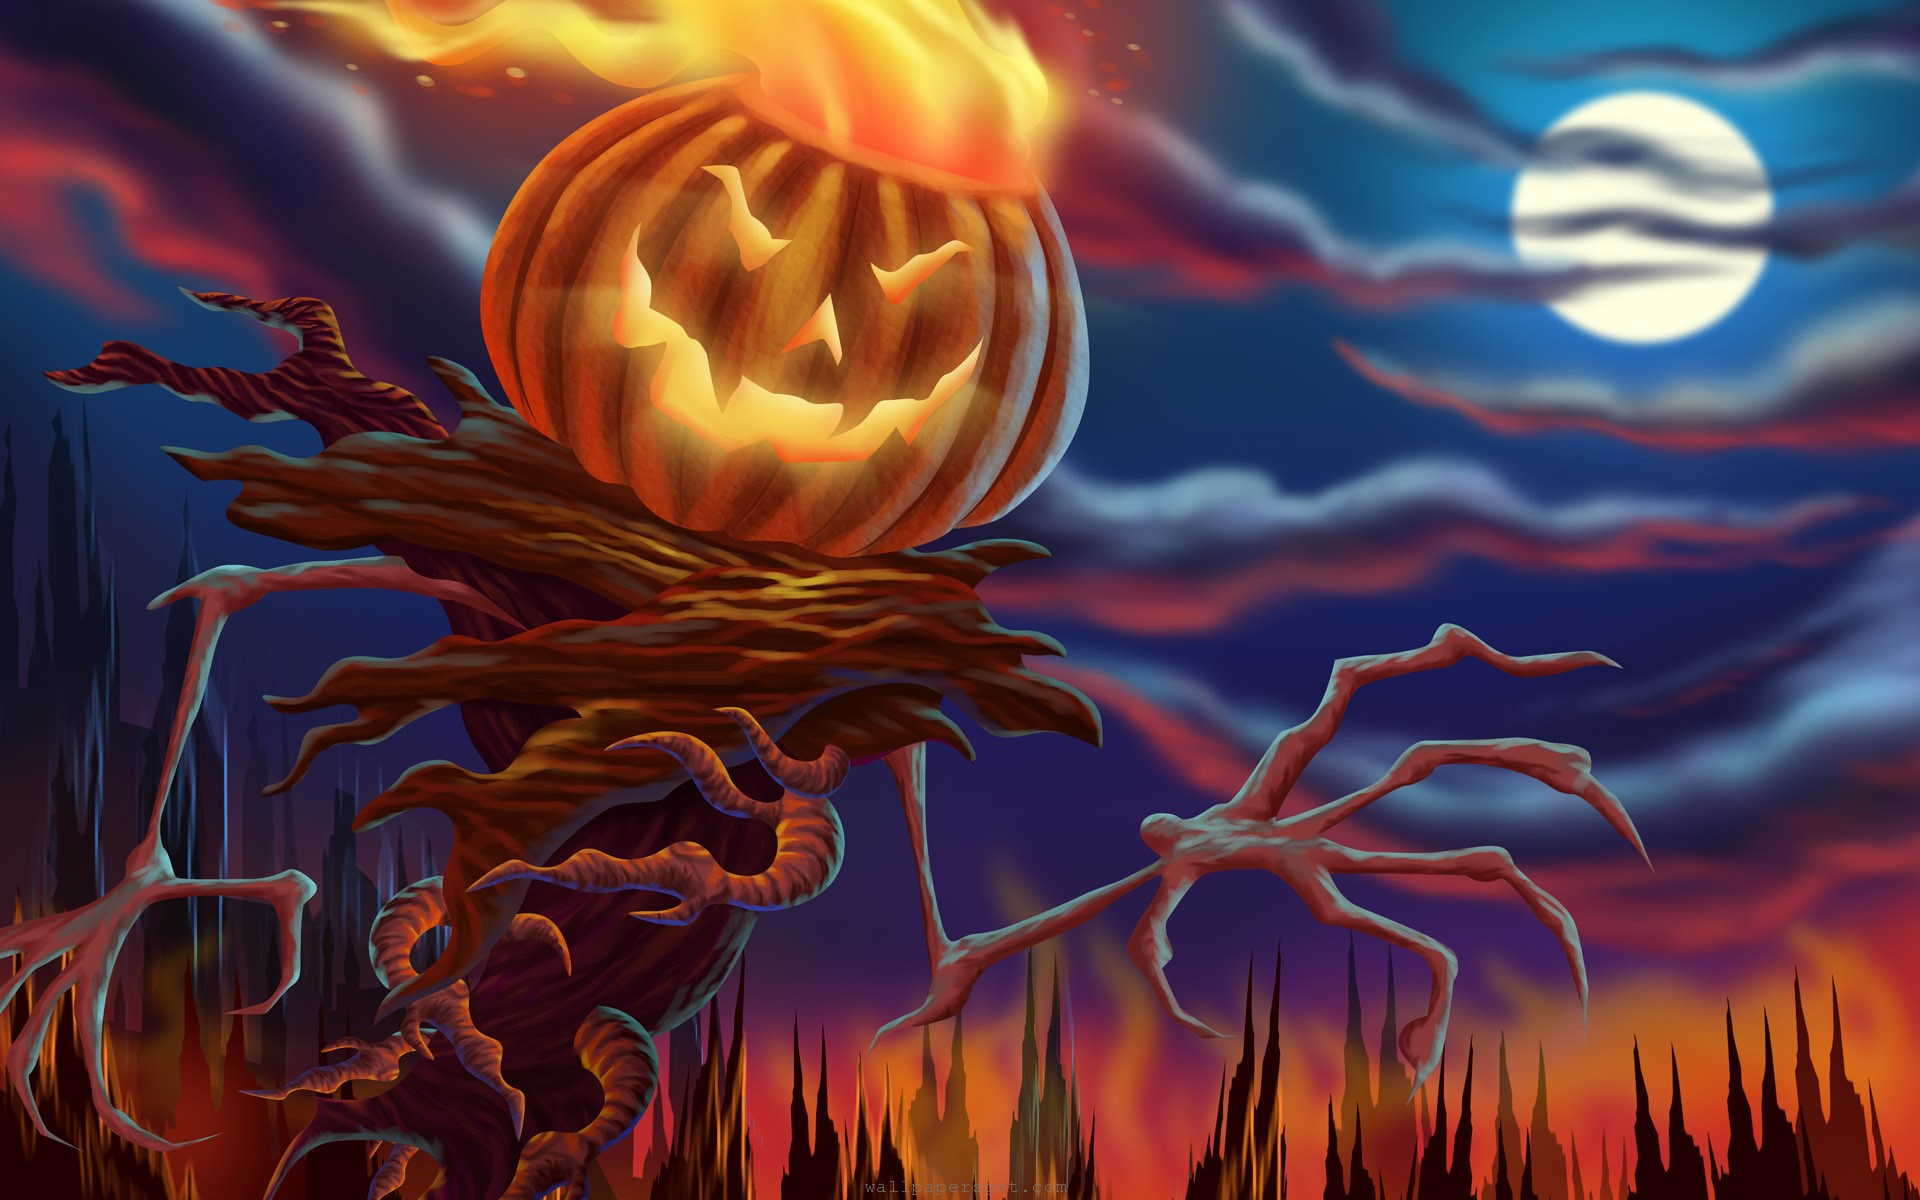 Most Inspiring Wallpaper Halloween Screensaver - halloween-screensavers-21642-22182-hd-wallpapers  Collection_501382.jpg